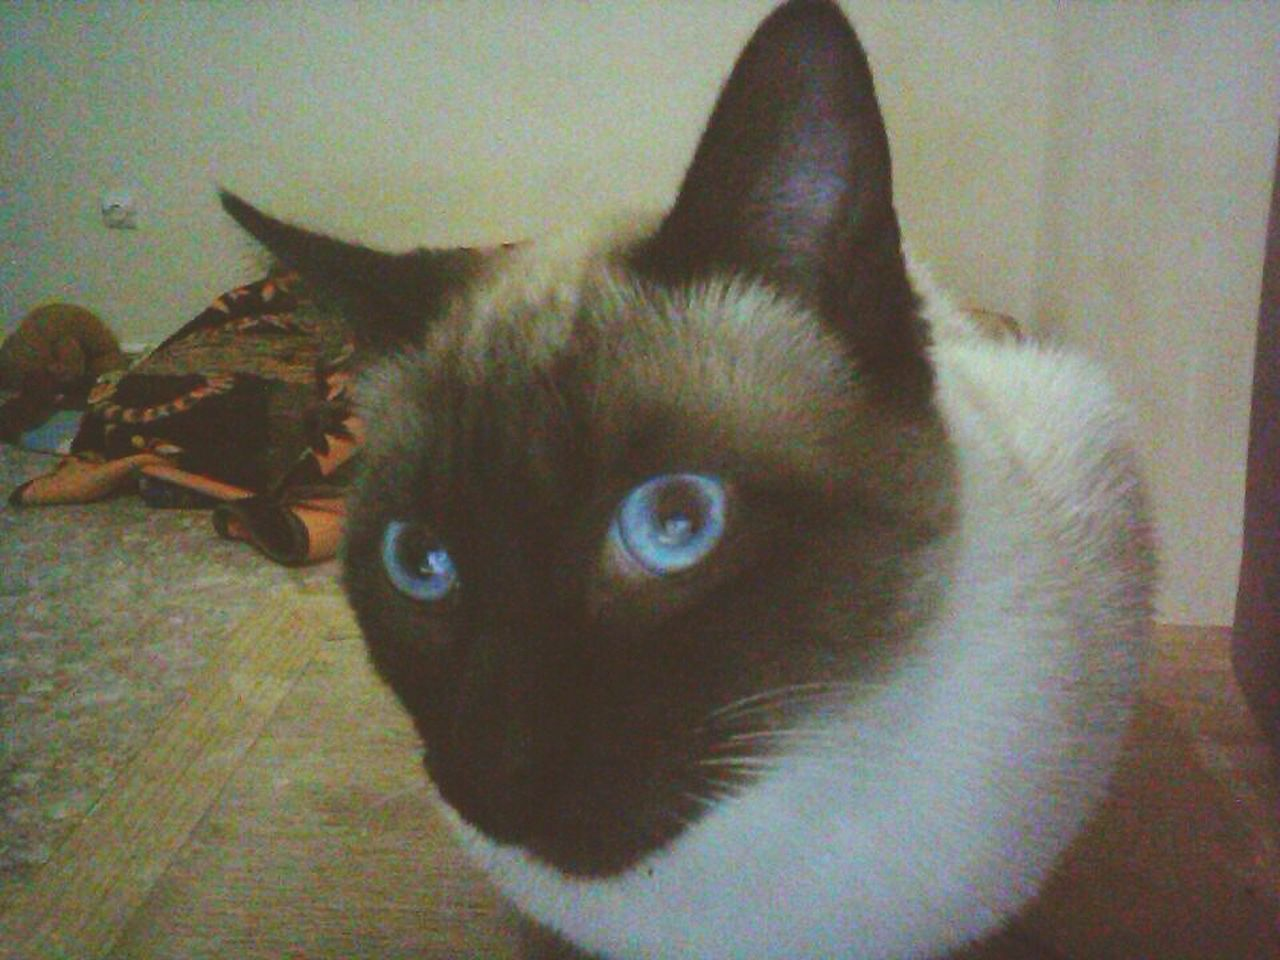 domestic cat, pets, domestic animals, animal themes, feline, cat, mammal, indoors, one animal, portrait, looking at camera, no people, siamese cat, close-up, day